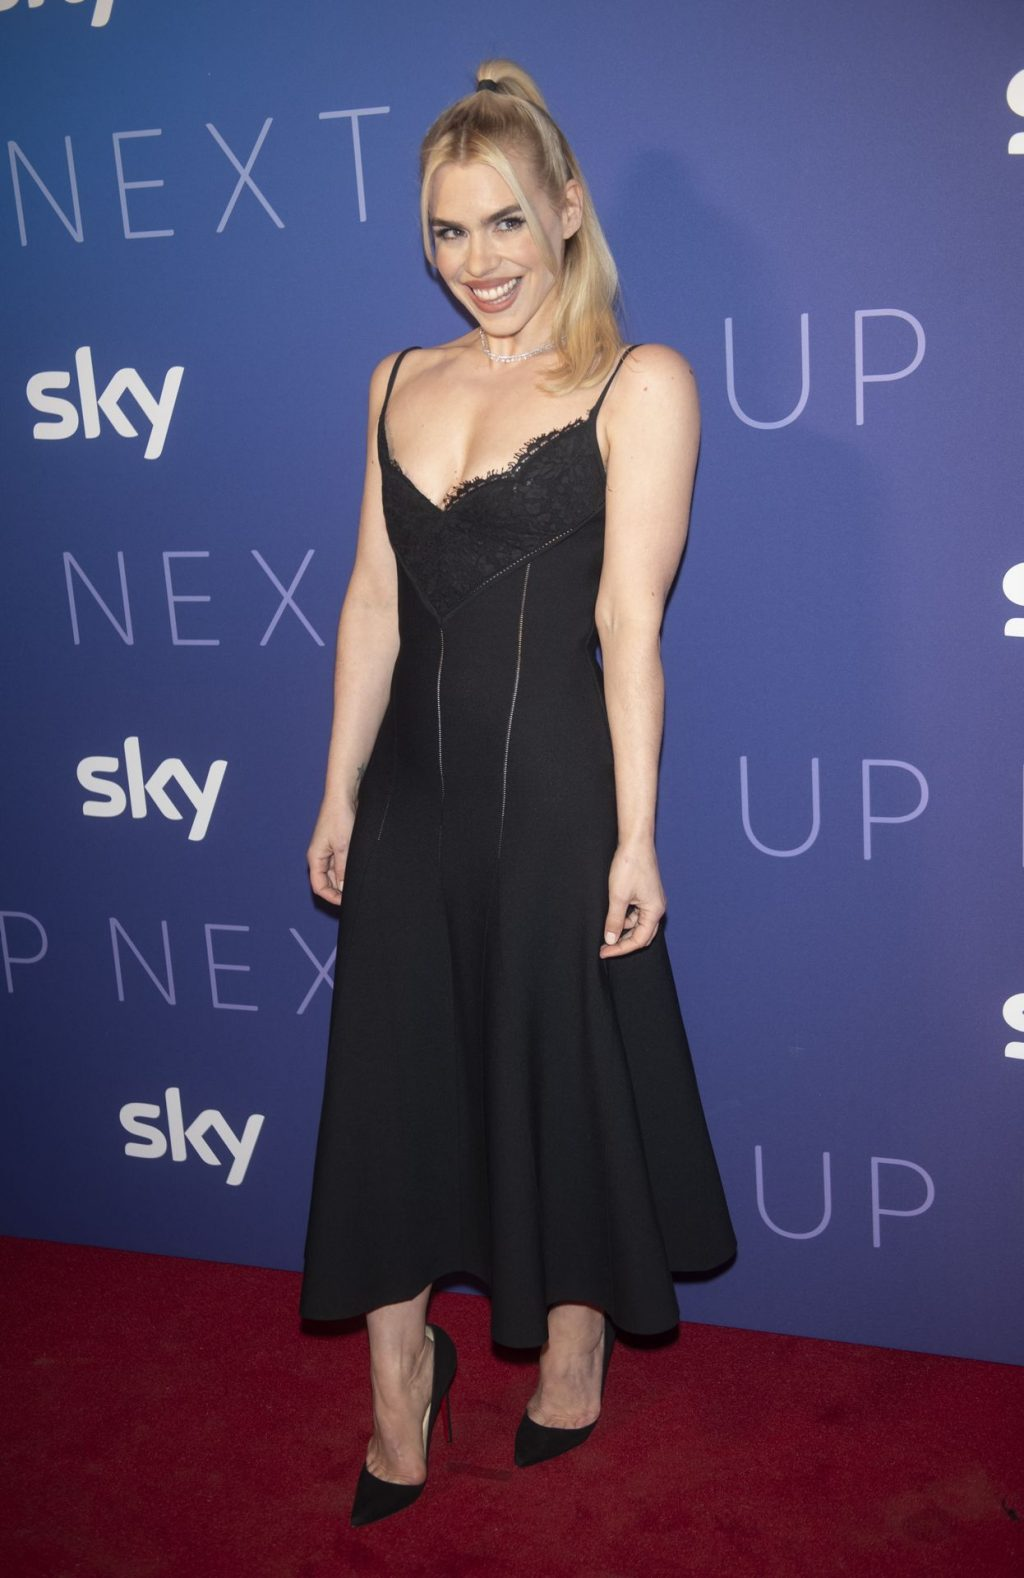 Billie Piper Sexy The Fappening Blog 53 1024x1578 - Billie Piper Smiles at the Sky Up Next Event (67 Photos)